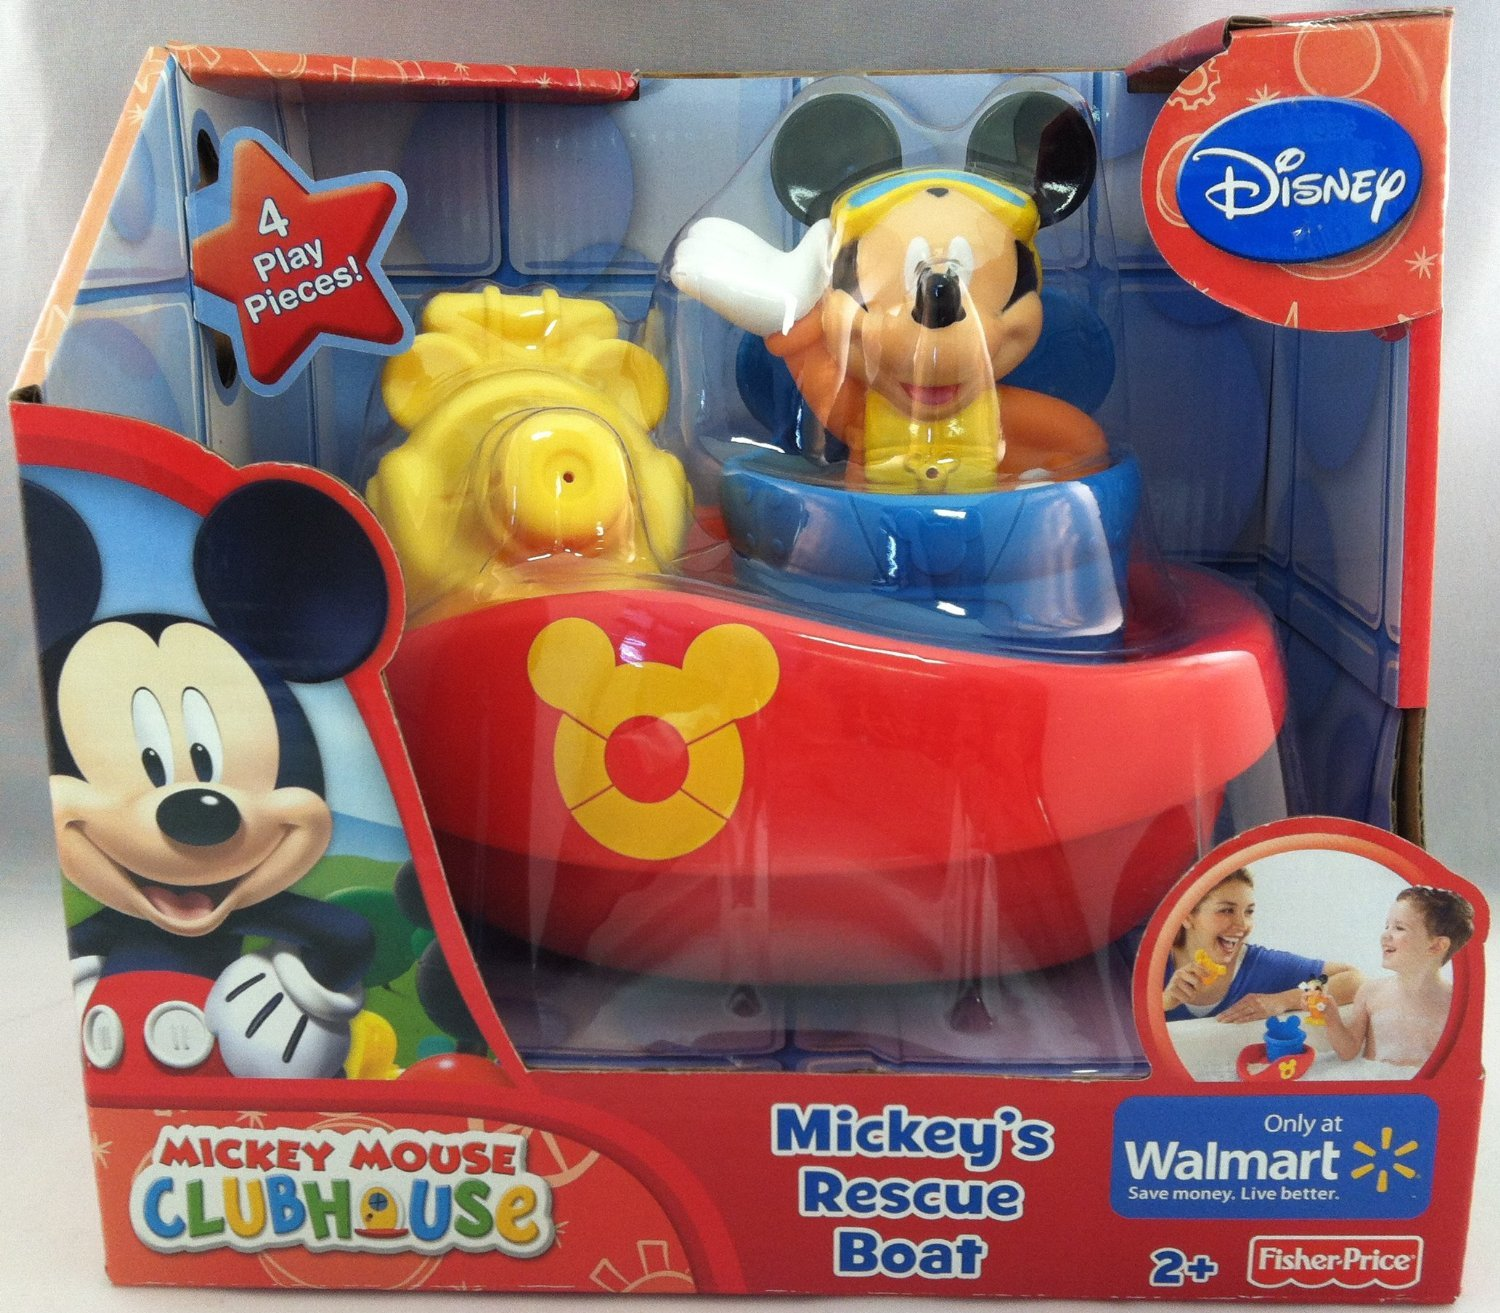 Amazon.com: Disney Mickey Mouse Clubhouse - Mickey\'s Rescue Boat ...